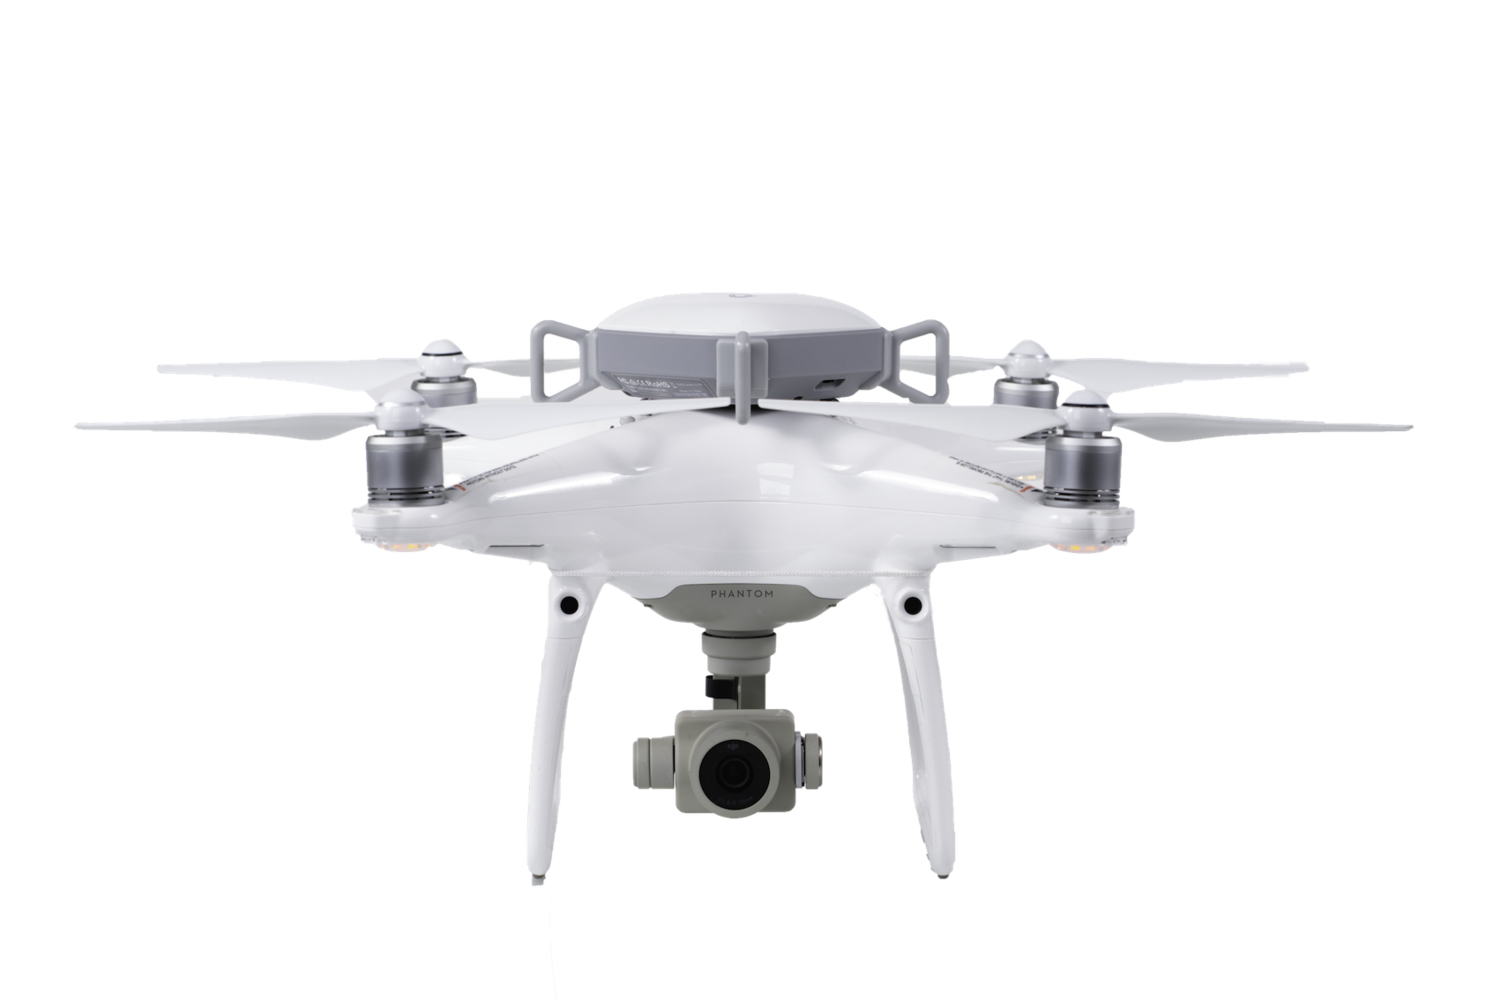 Phantom 4 & SafeAir